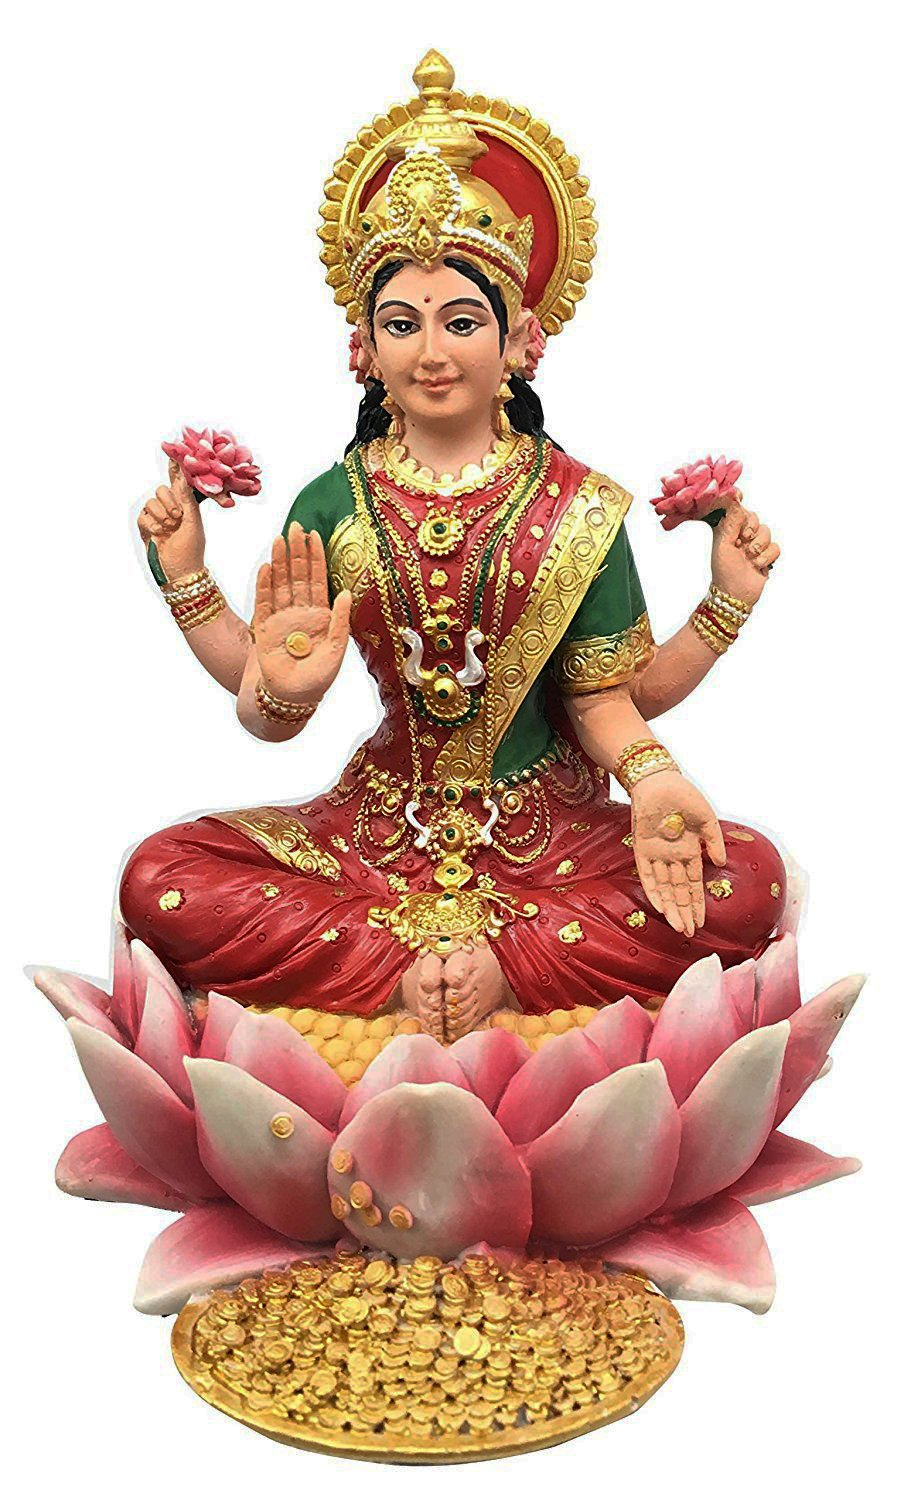 Lakshmi Hindu Goddess on Lotus Statue Sculpture by Pacific Trading